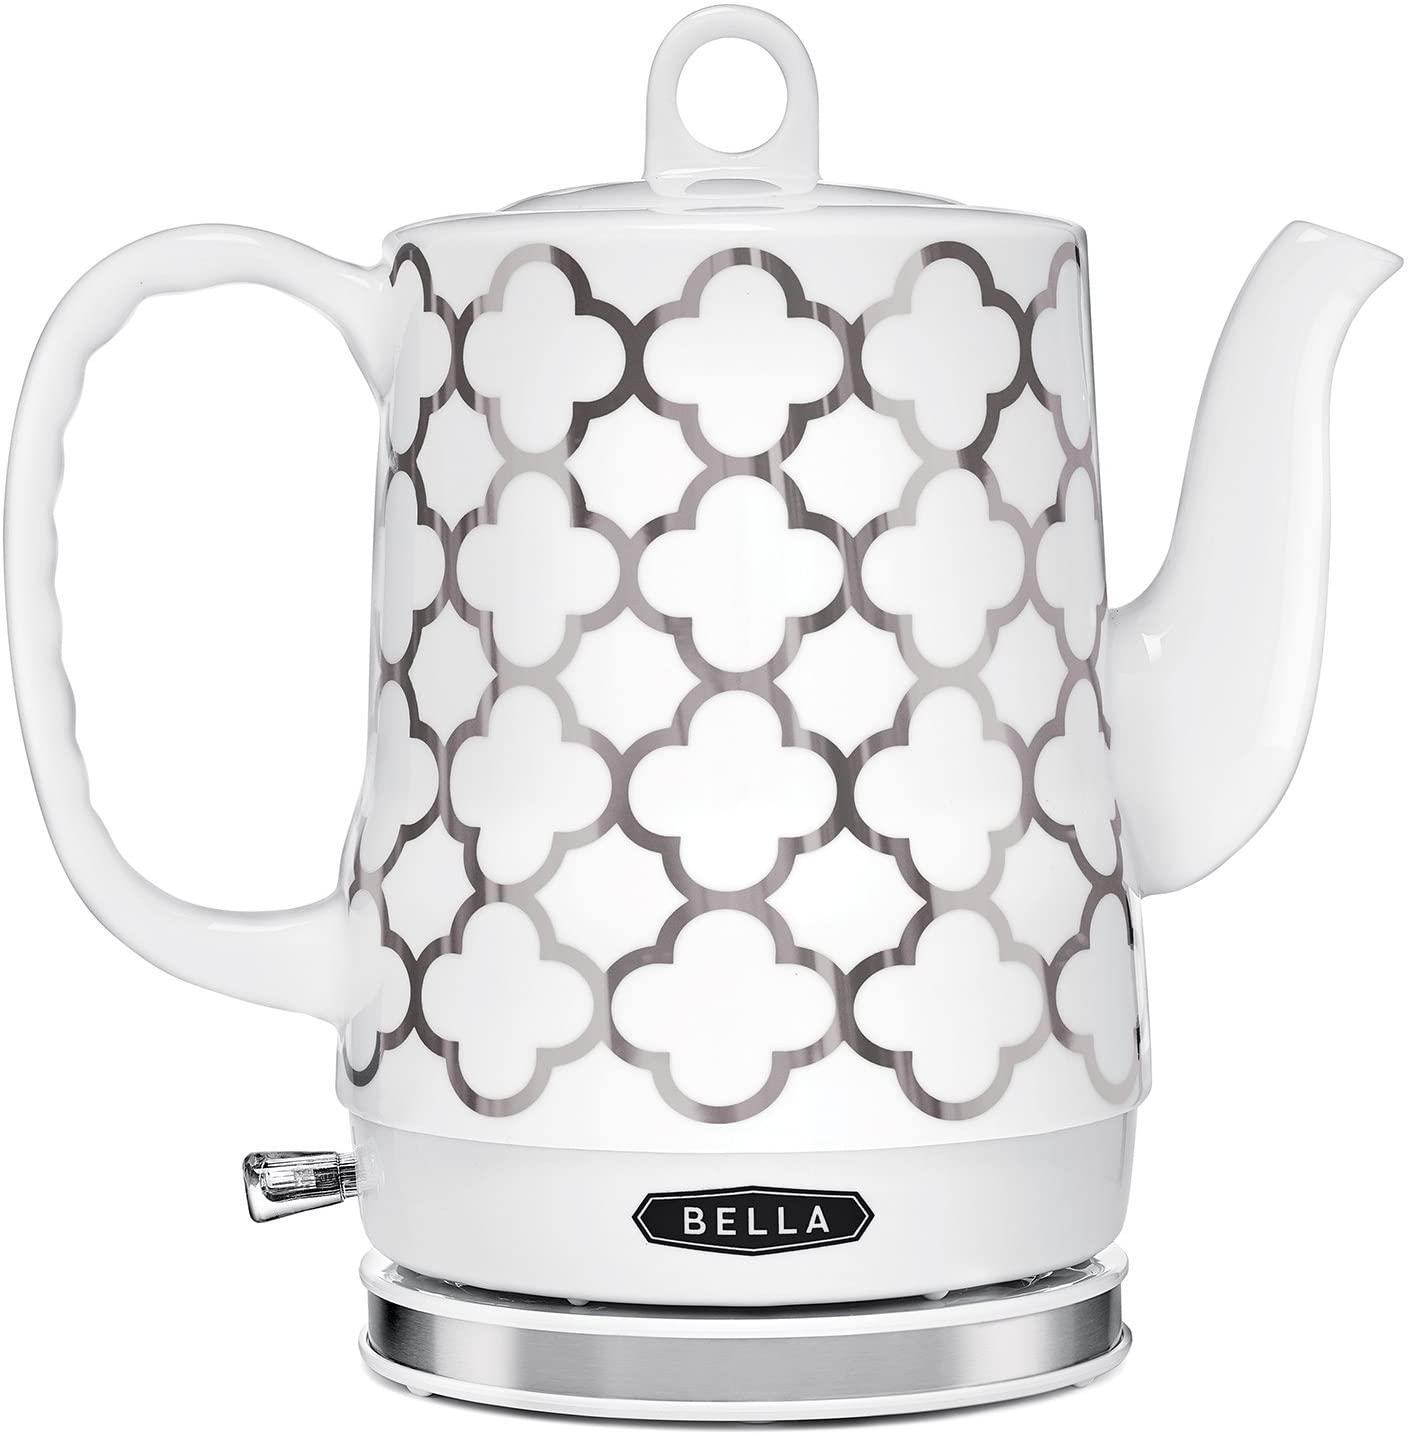 BELLA Electric Ceramic Tea Max 47% OFF Kettle Water and Easily Boil Quickly 5 ☆ very popular